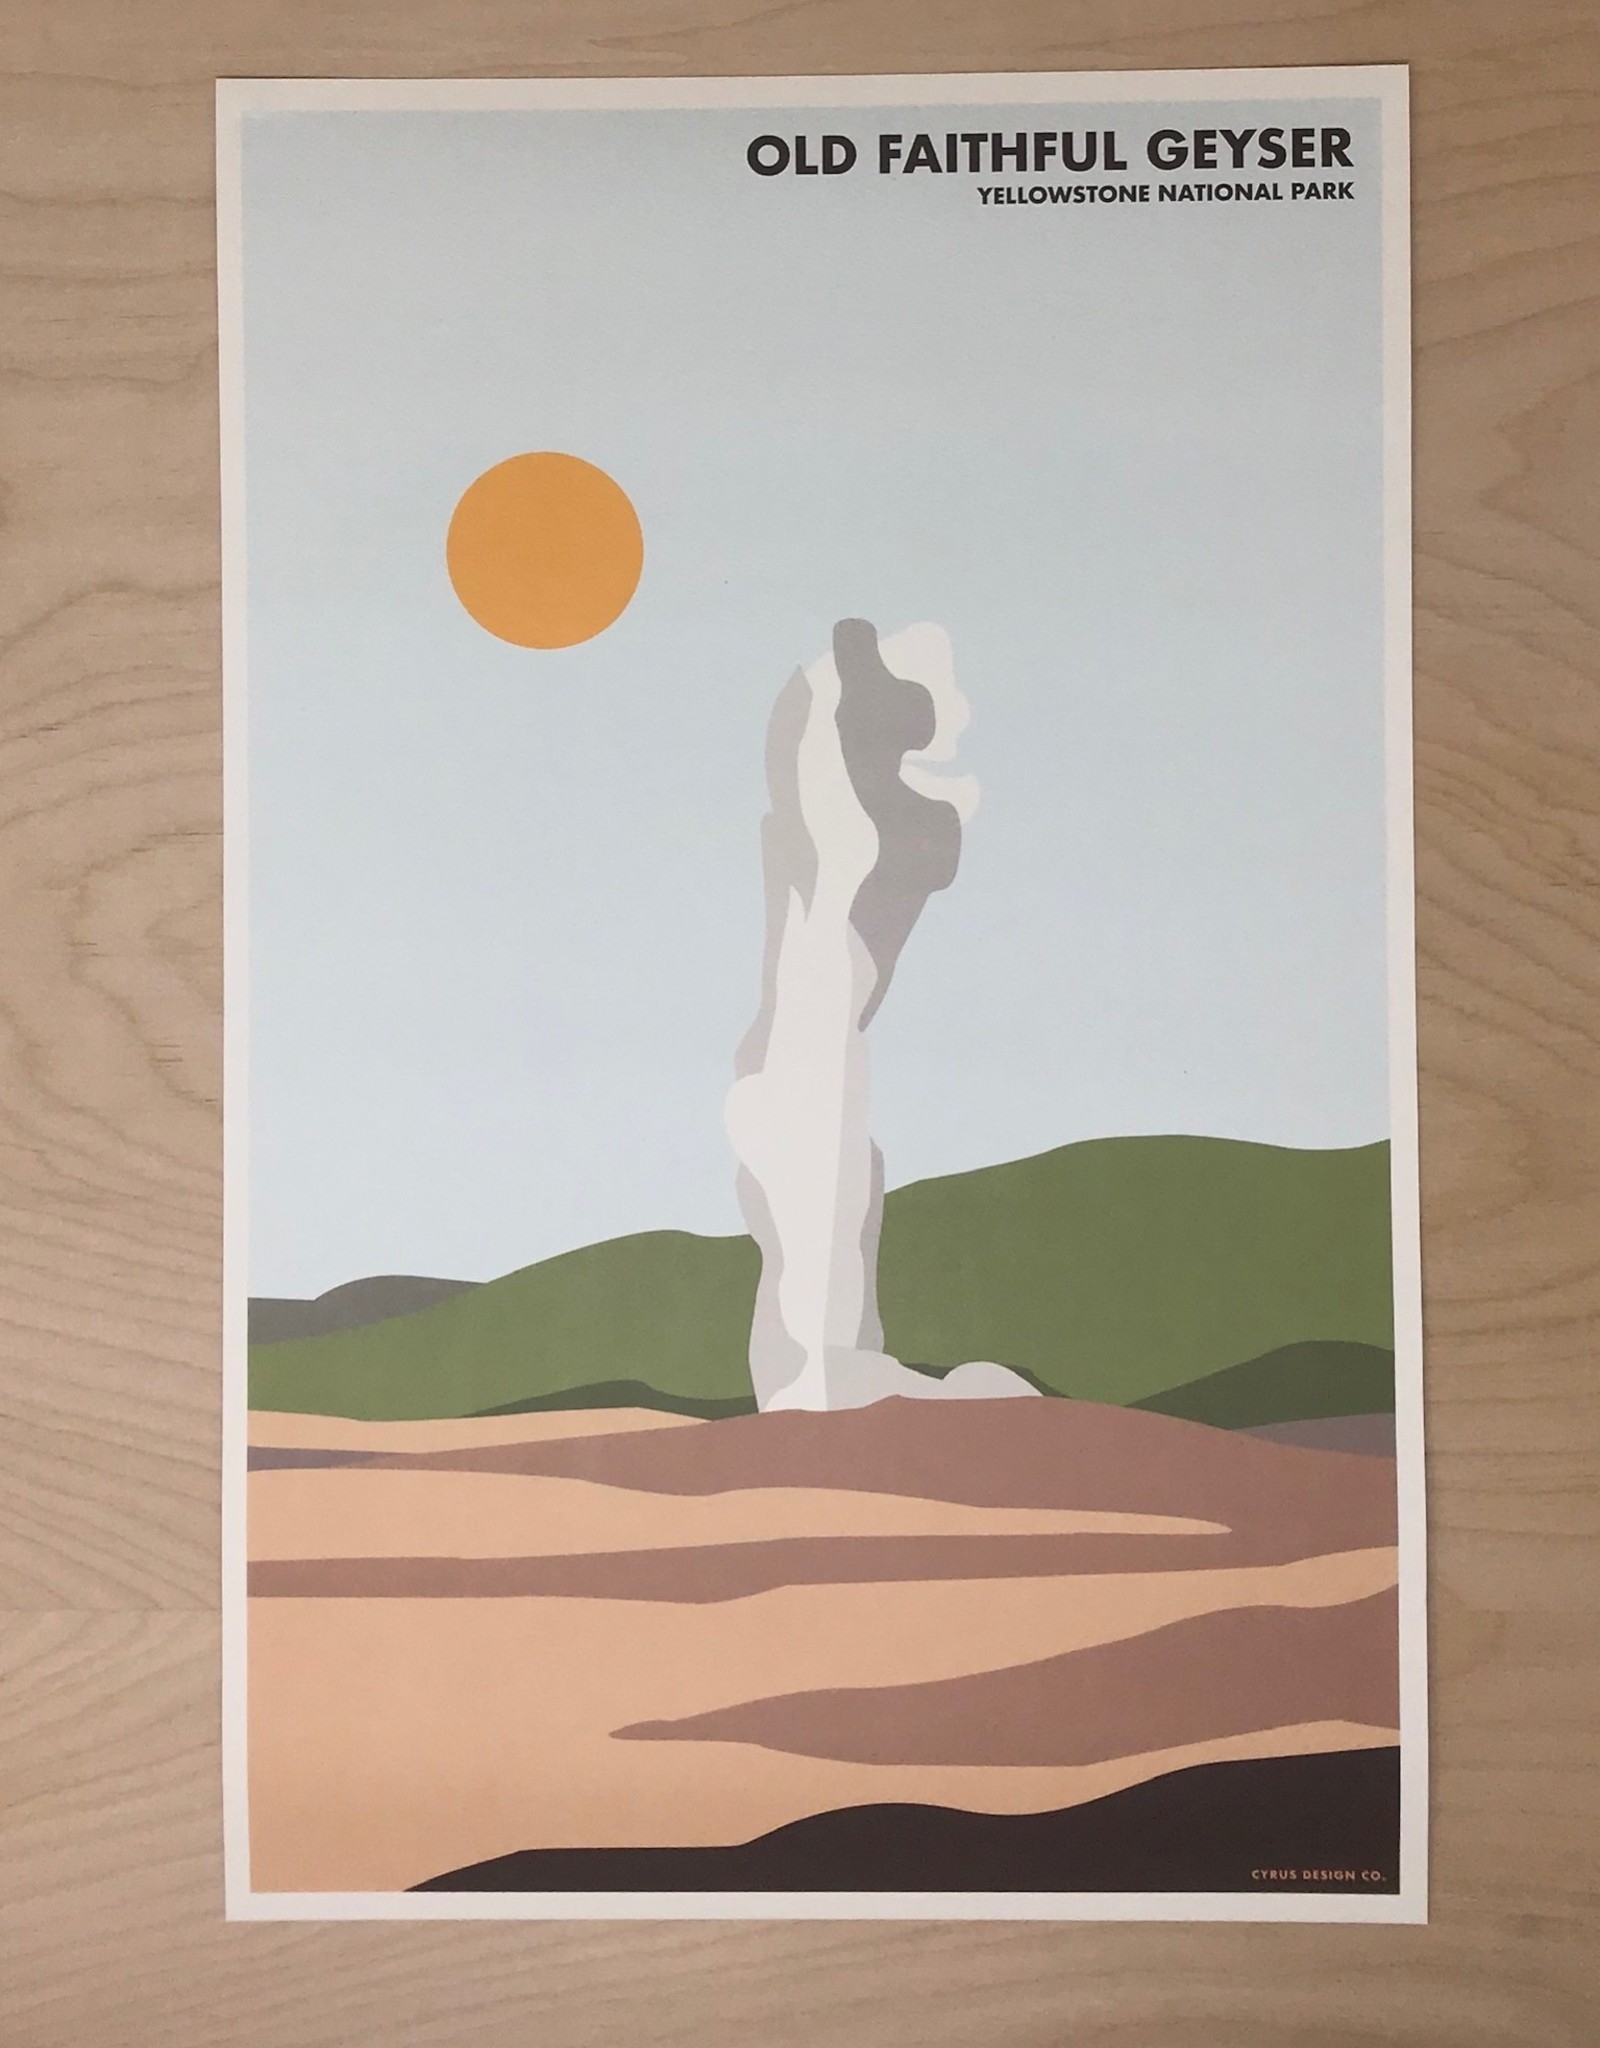 Cyrus Design Print- Old Faithful Geyser